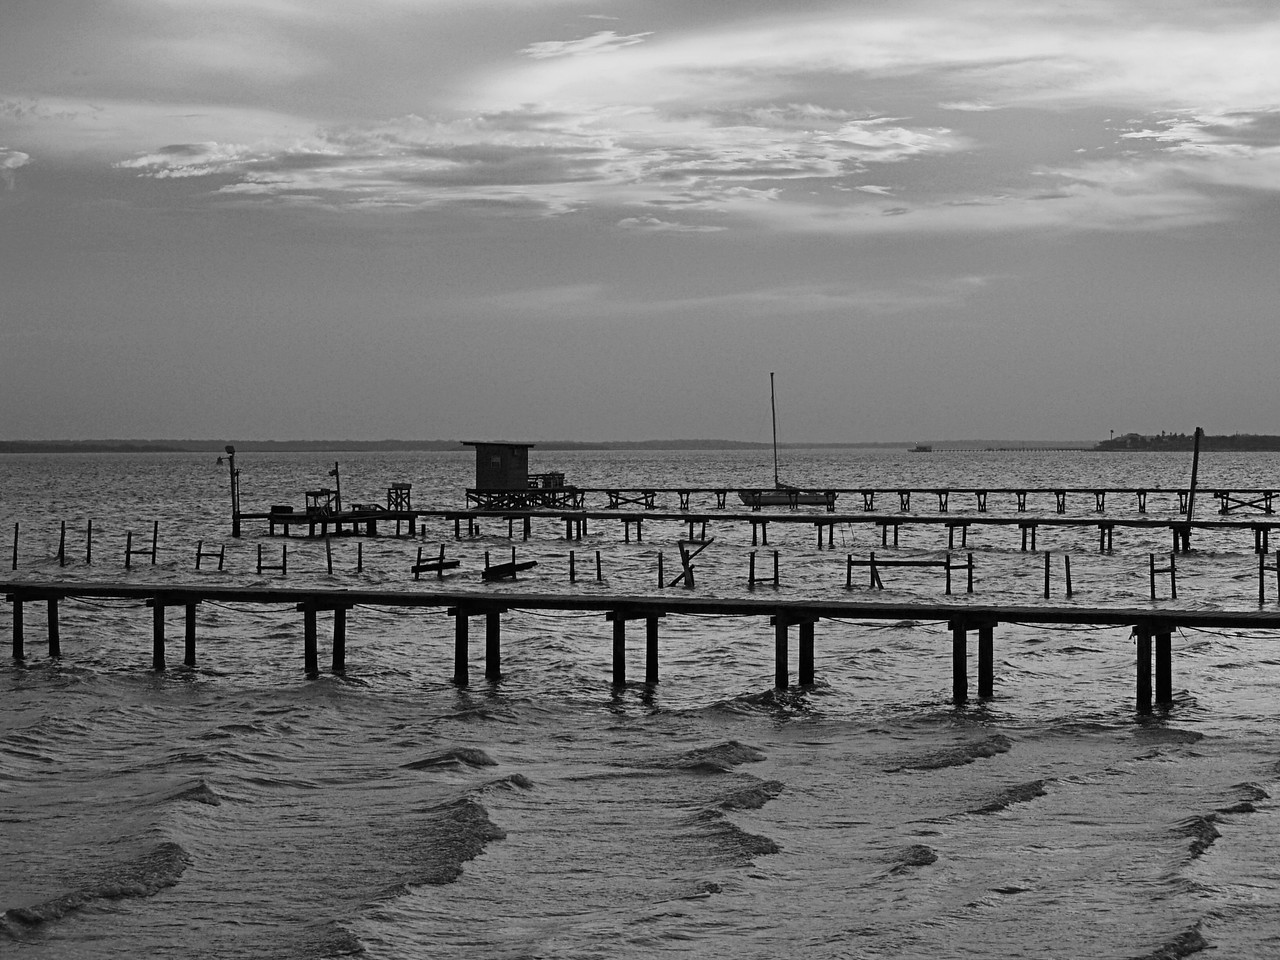 OLYMPUS DIGITAL CAMERA--Sunset on Baffin Bay, looking out from our pier.  The waves looked<br /> very unusual this evening, almost like snow drifts in the picture.